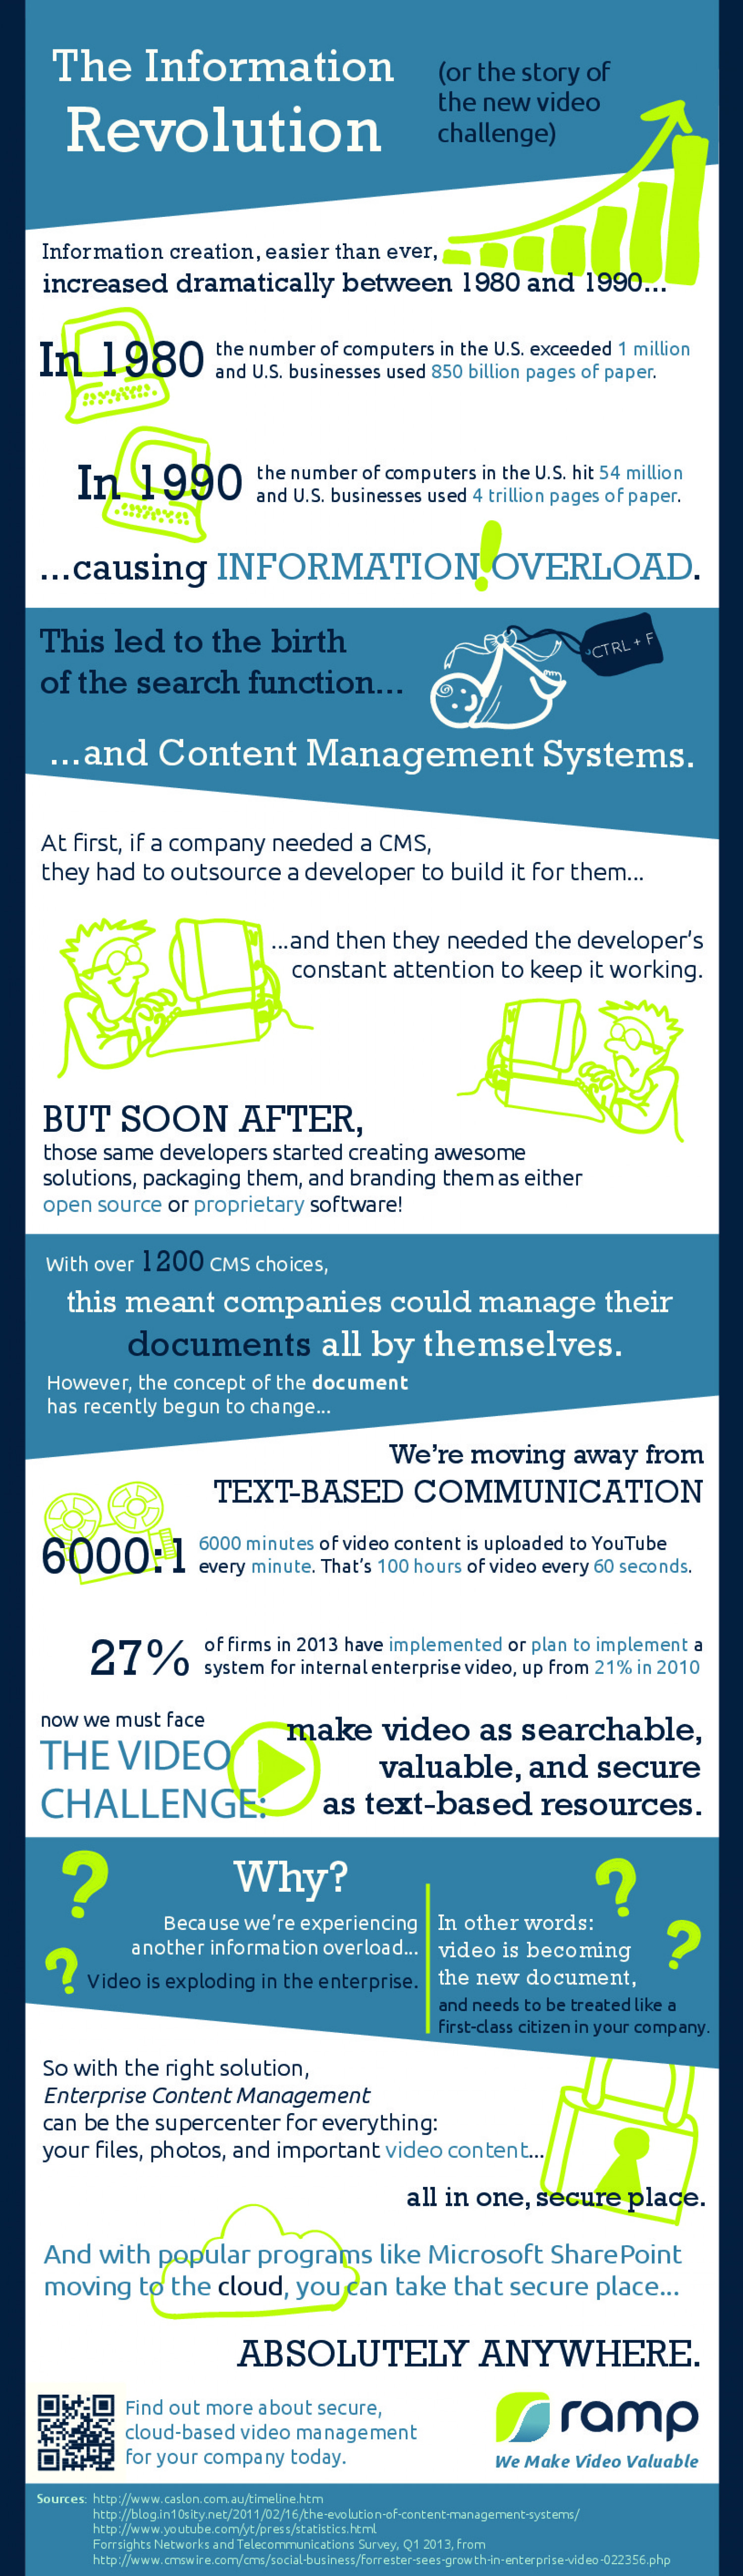 The Information Revolution Infographic